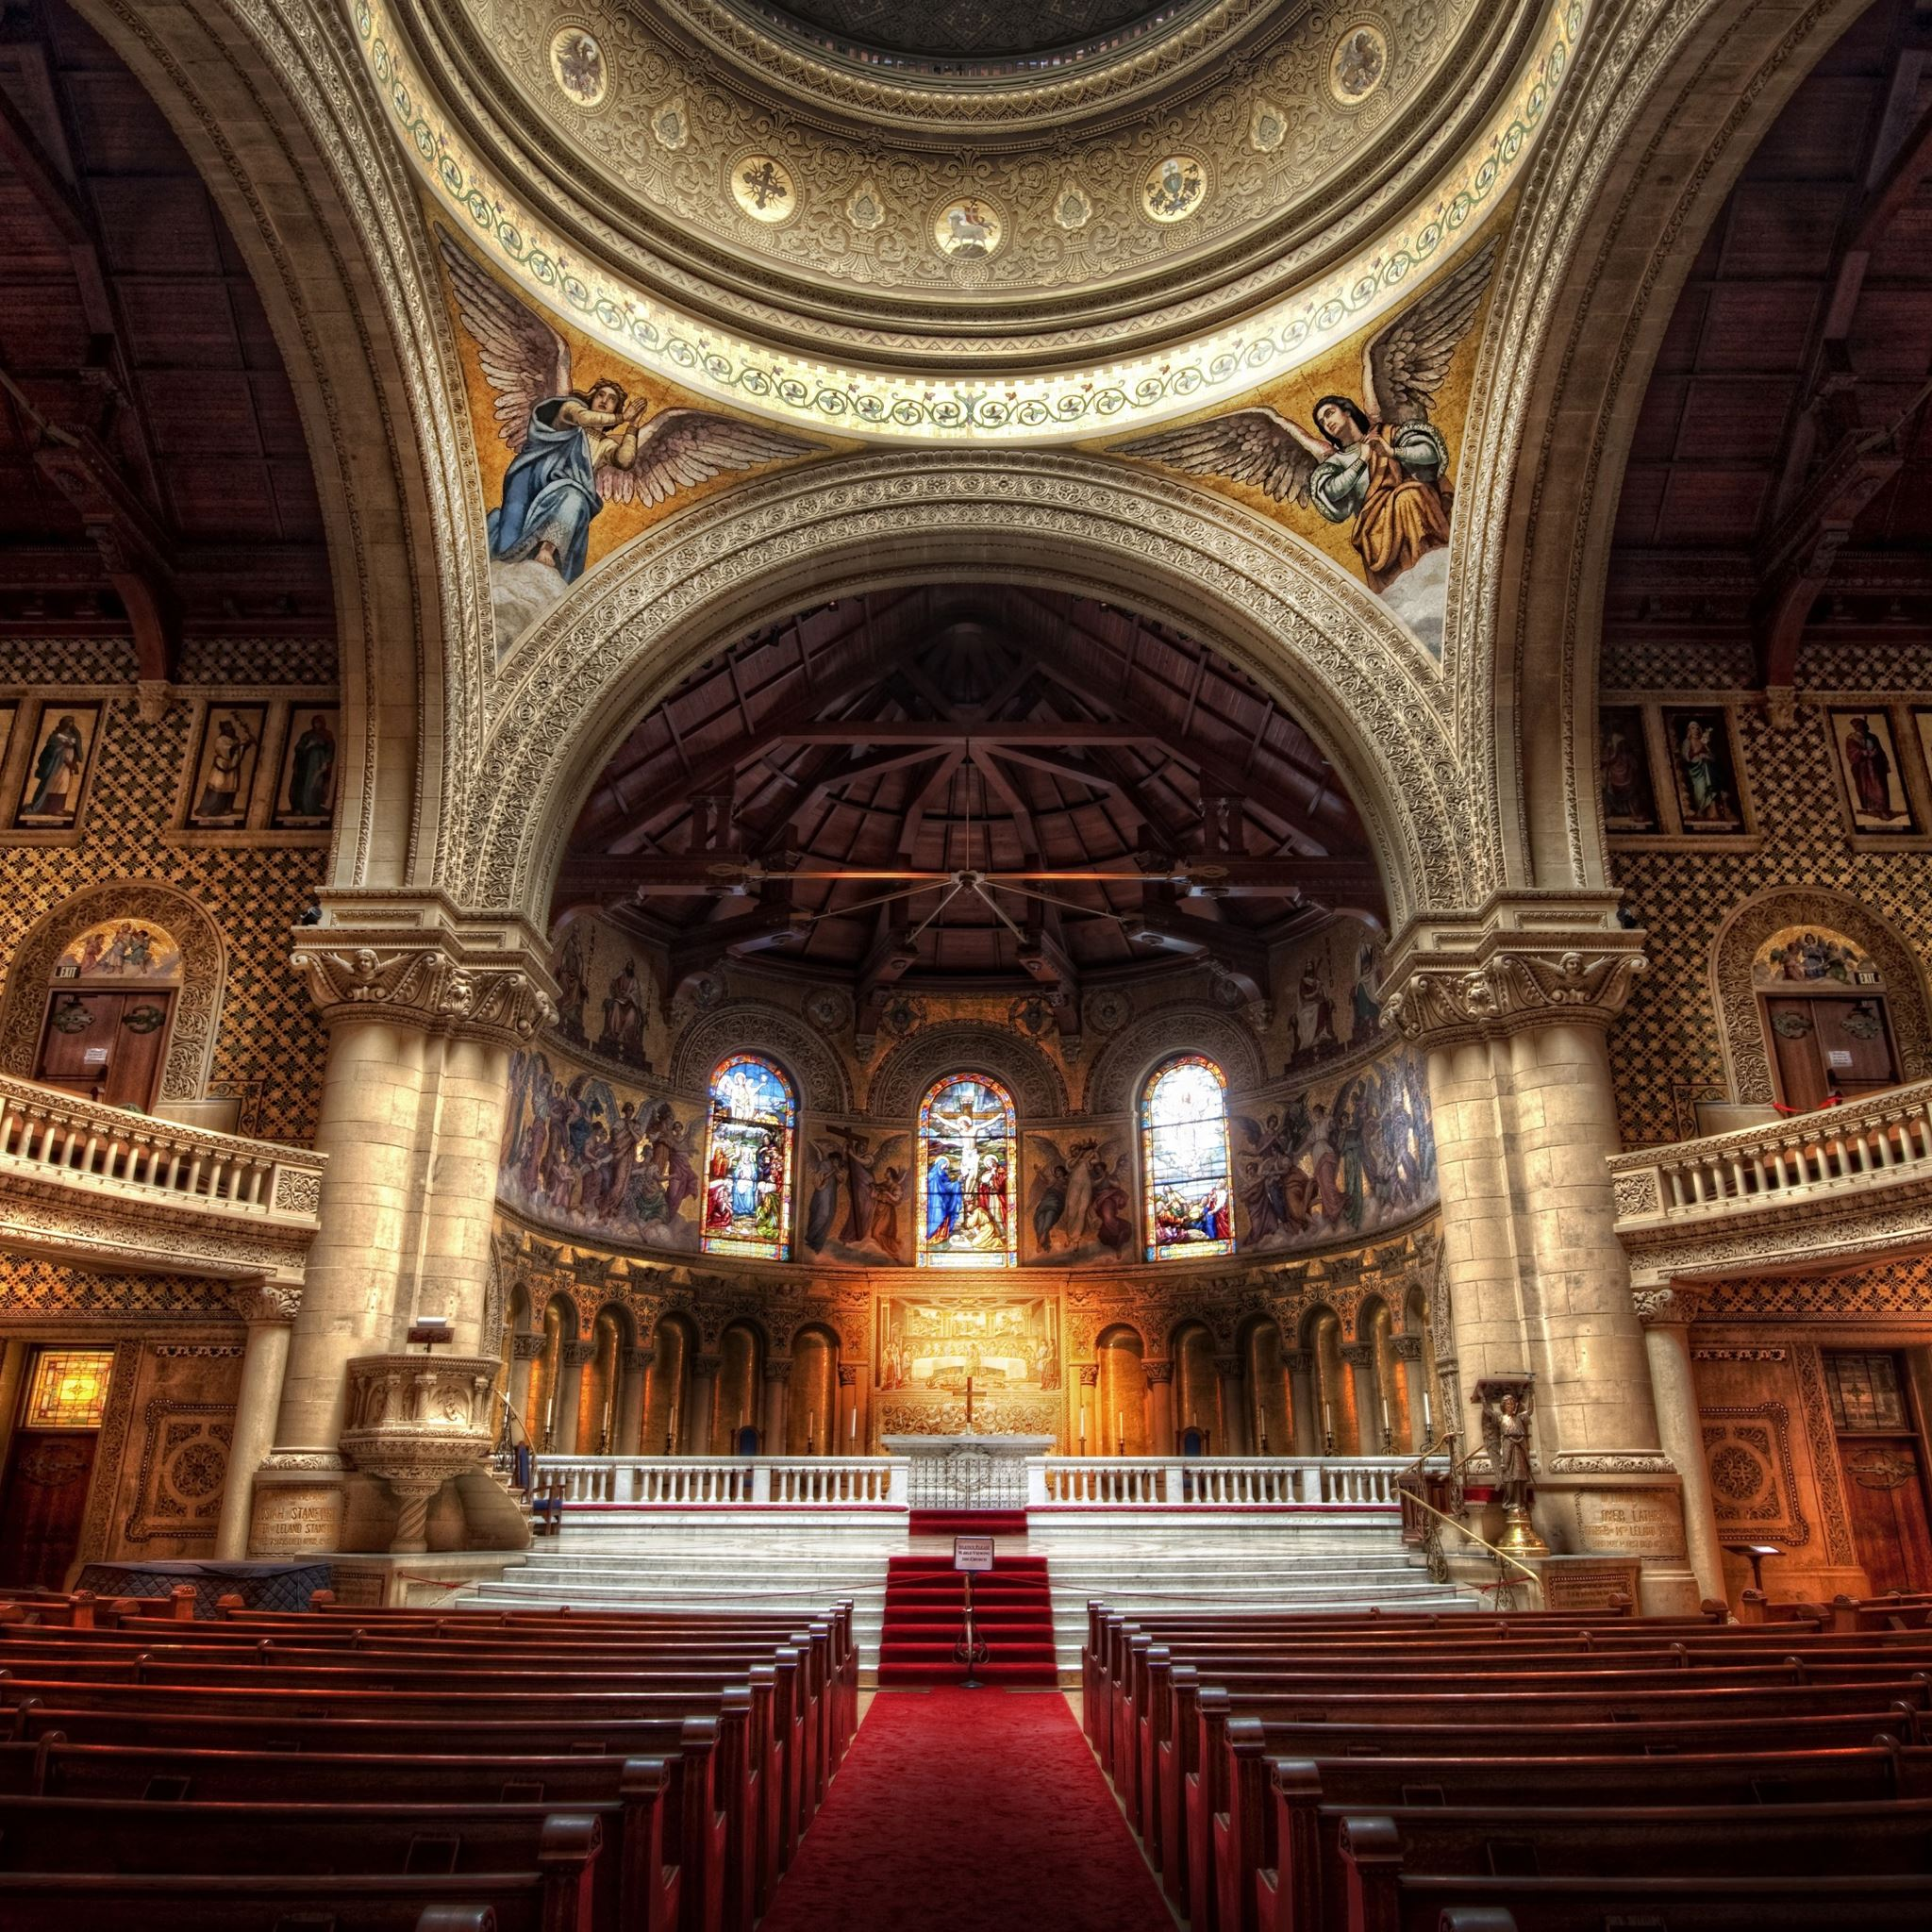 Church in Stanford iPad Air wallpaper